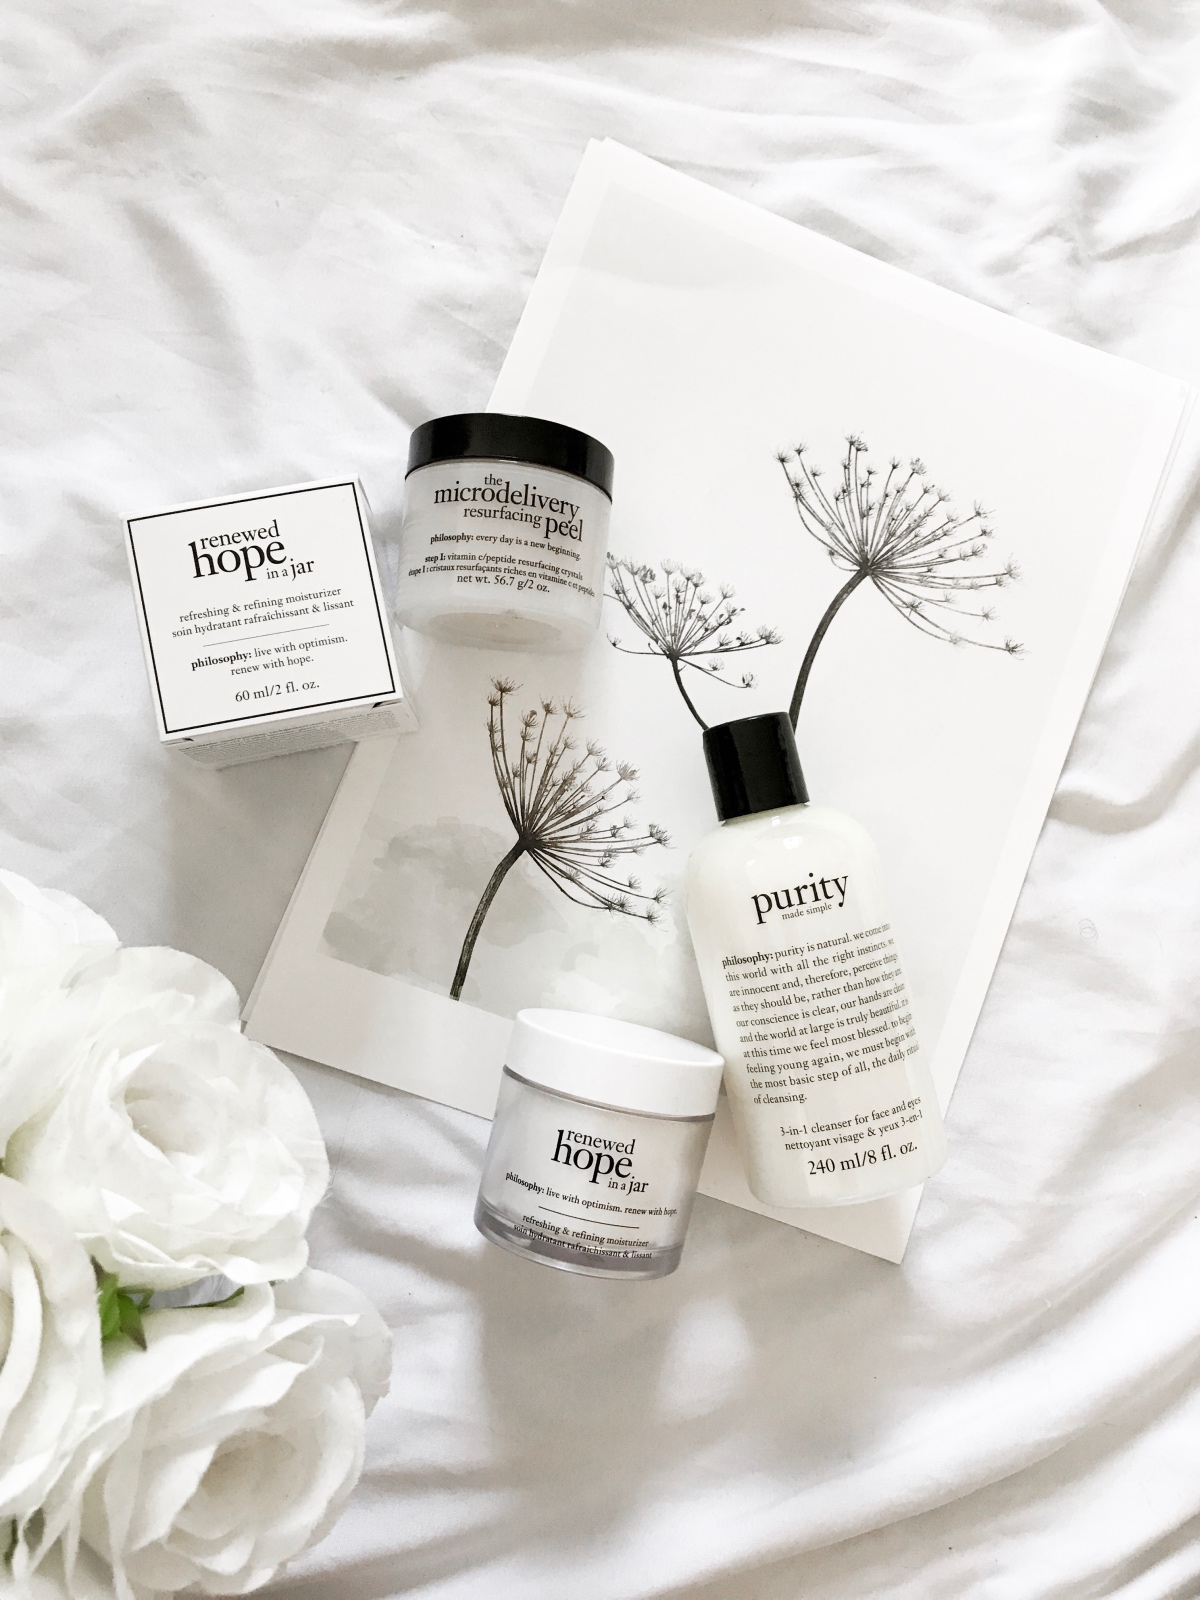 Philosophy cleanse, peel & treat